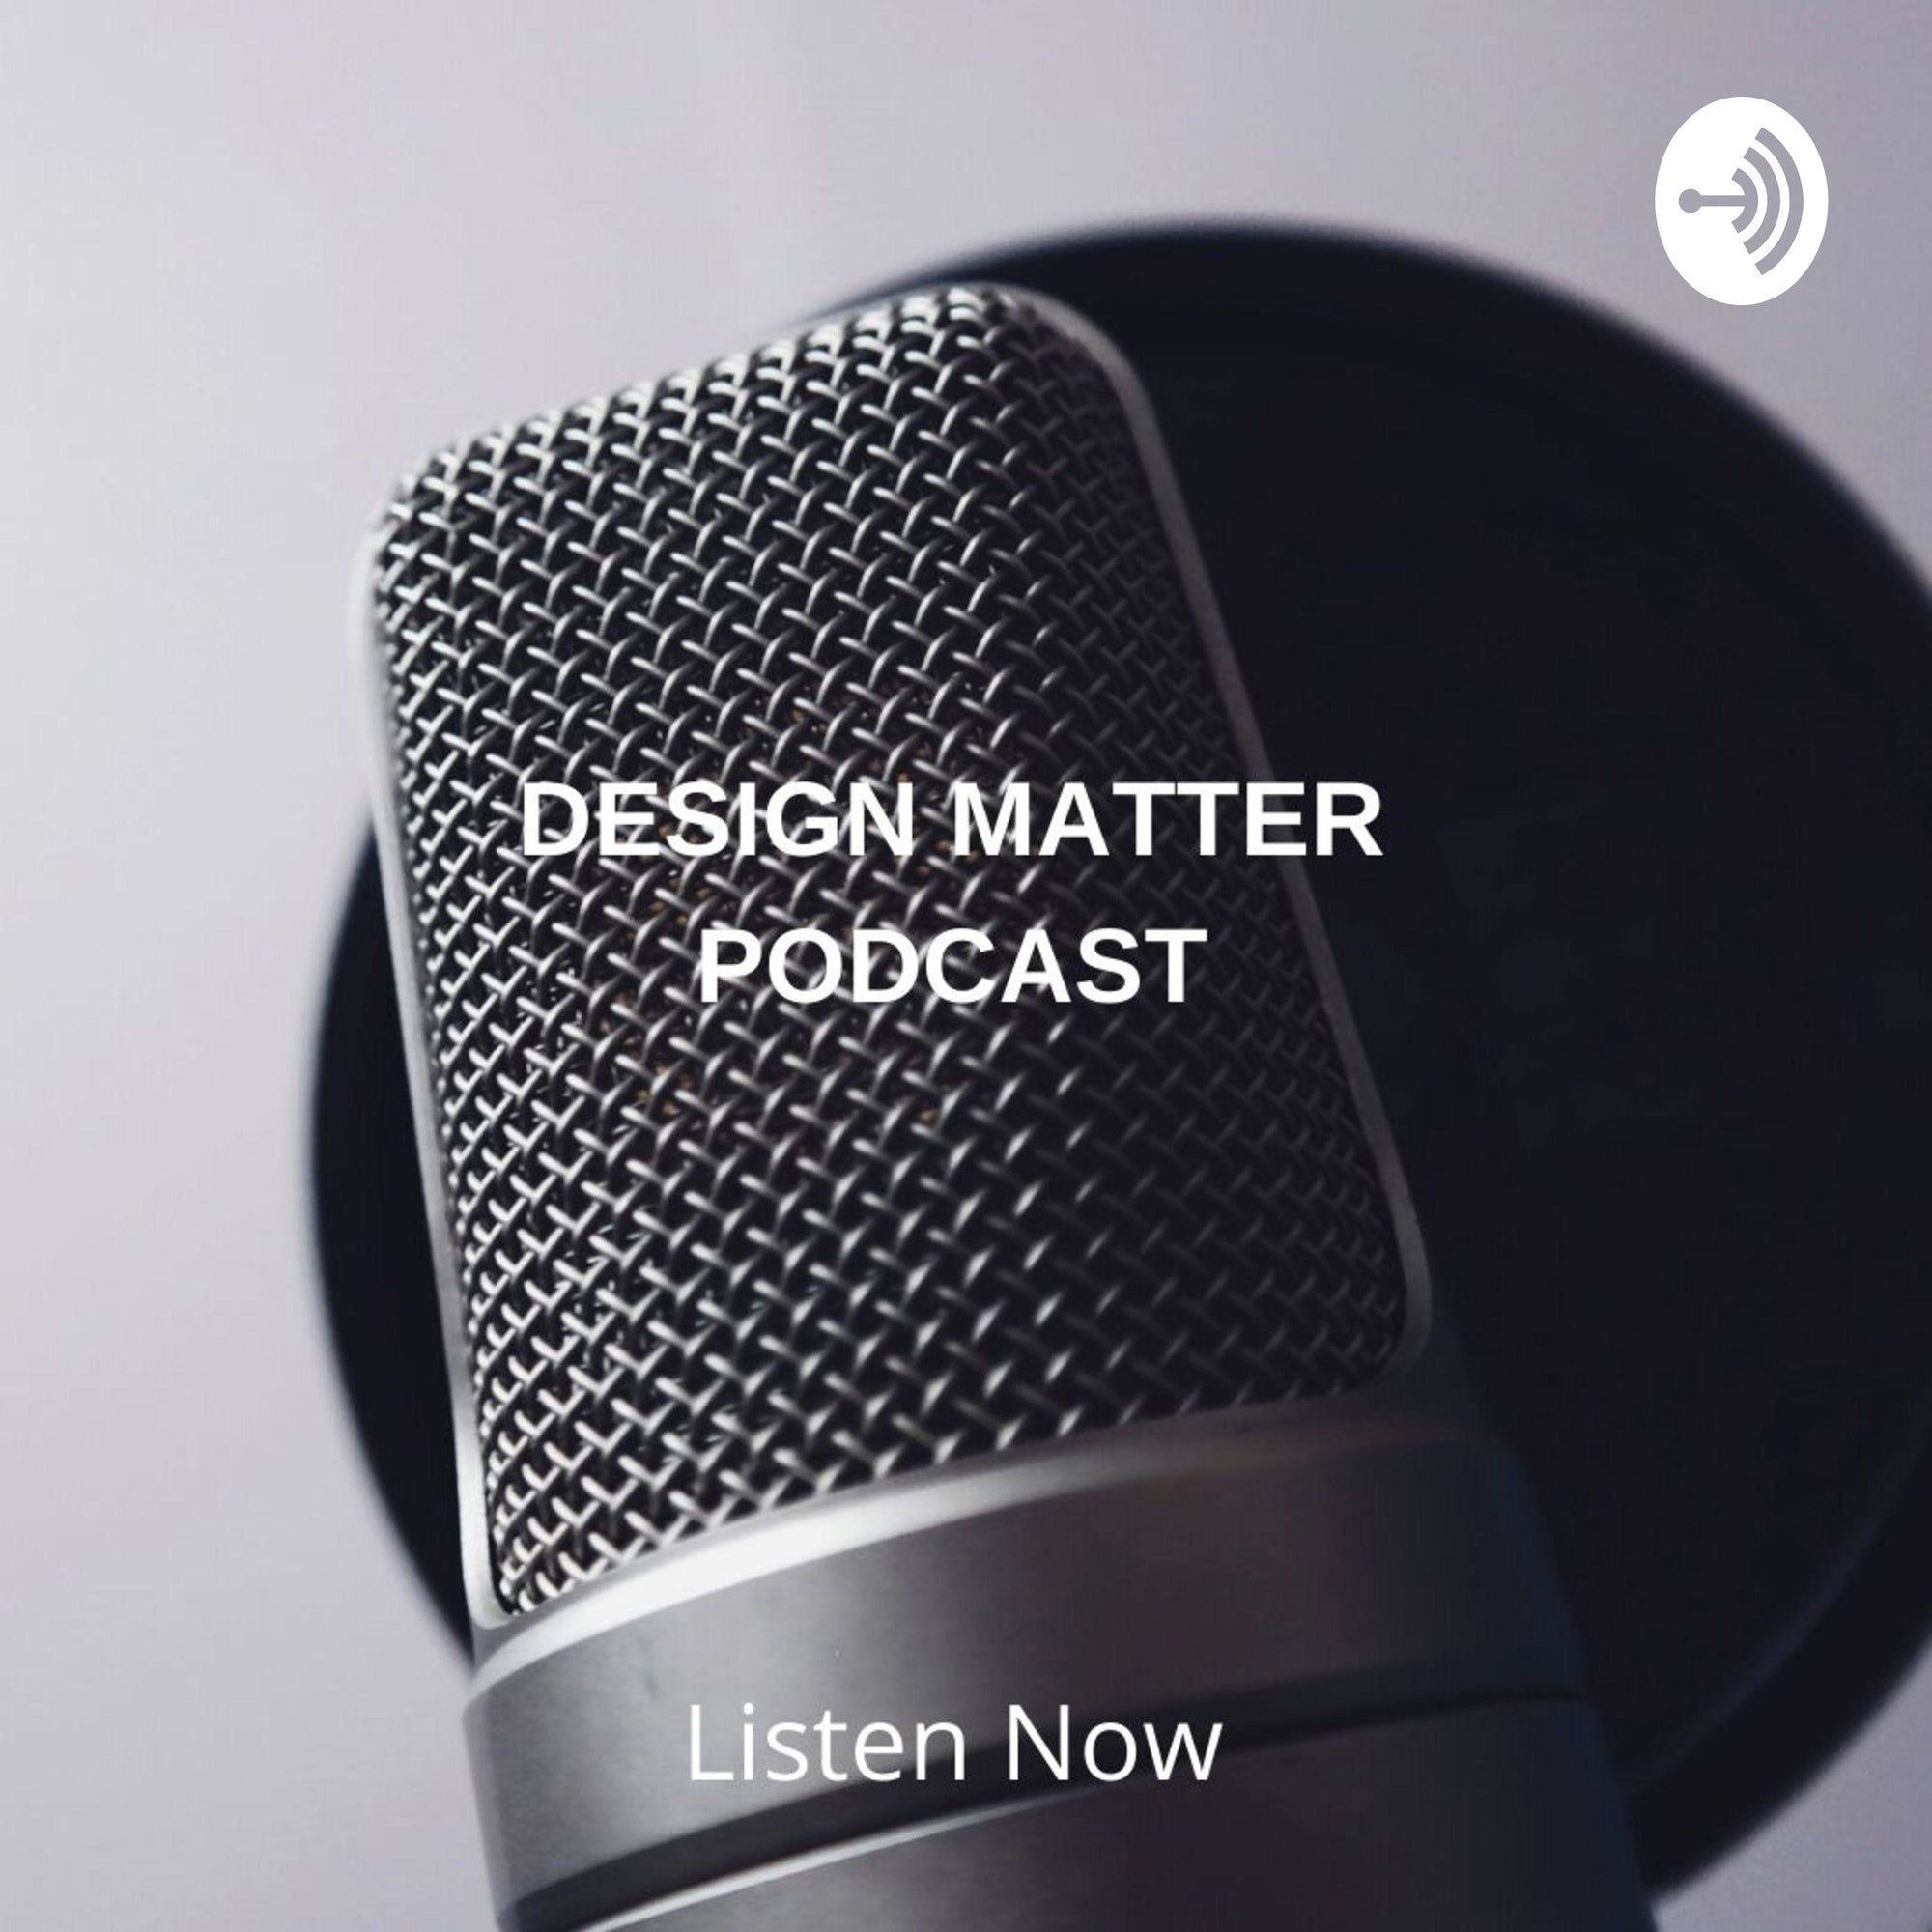 DESIGN [ MATTER ] PODCAST